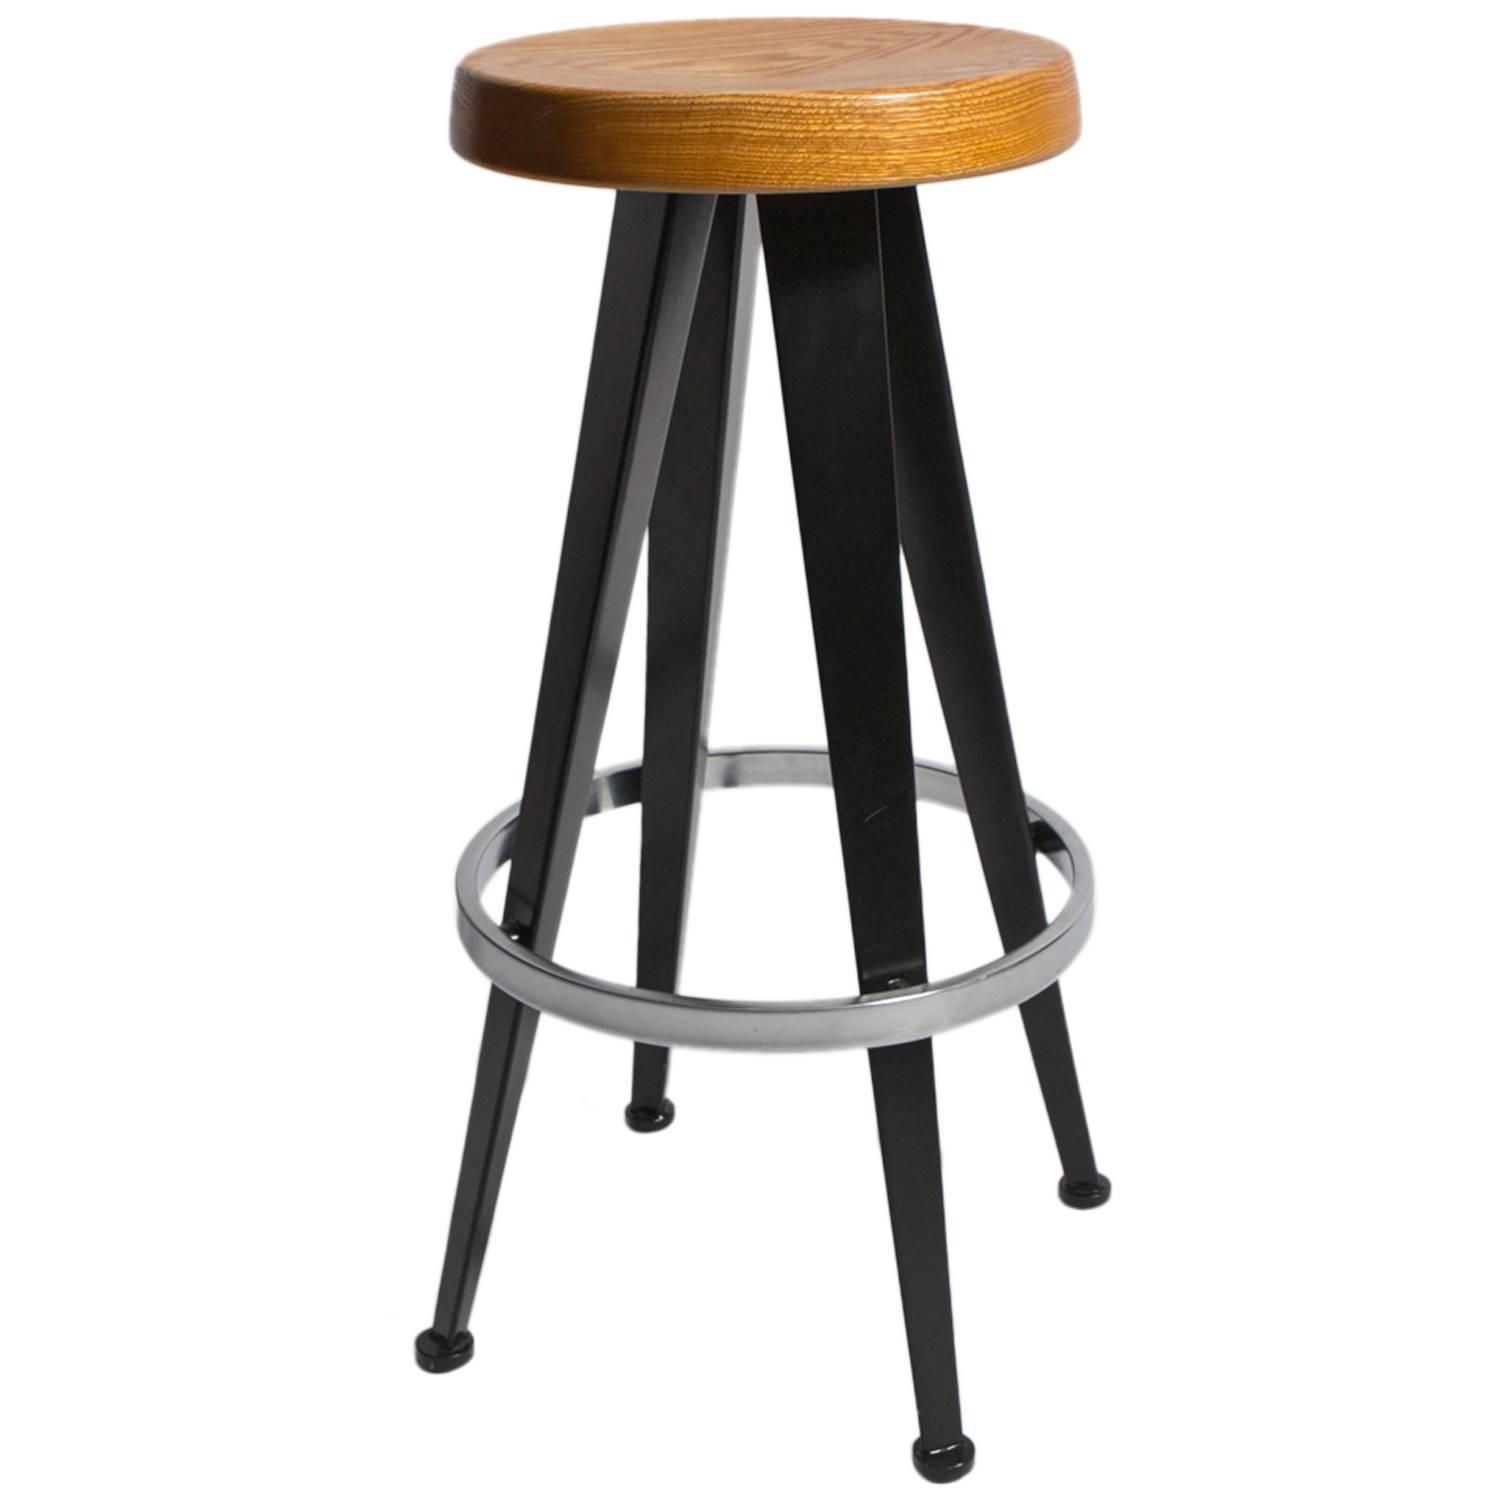 modernist bar stool after jean prouve circa 1990s at 1stdibs